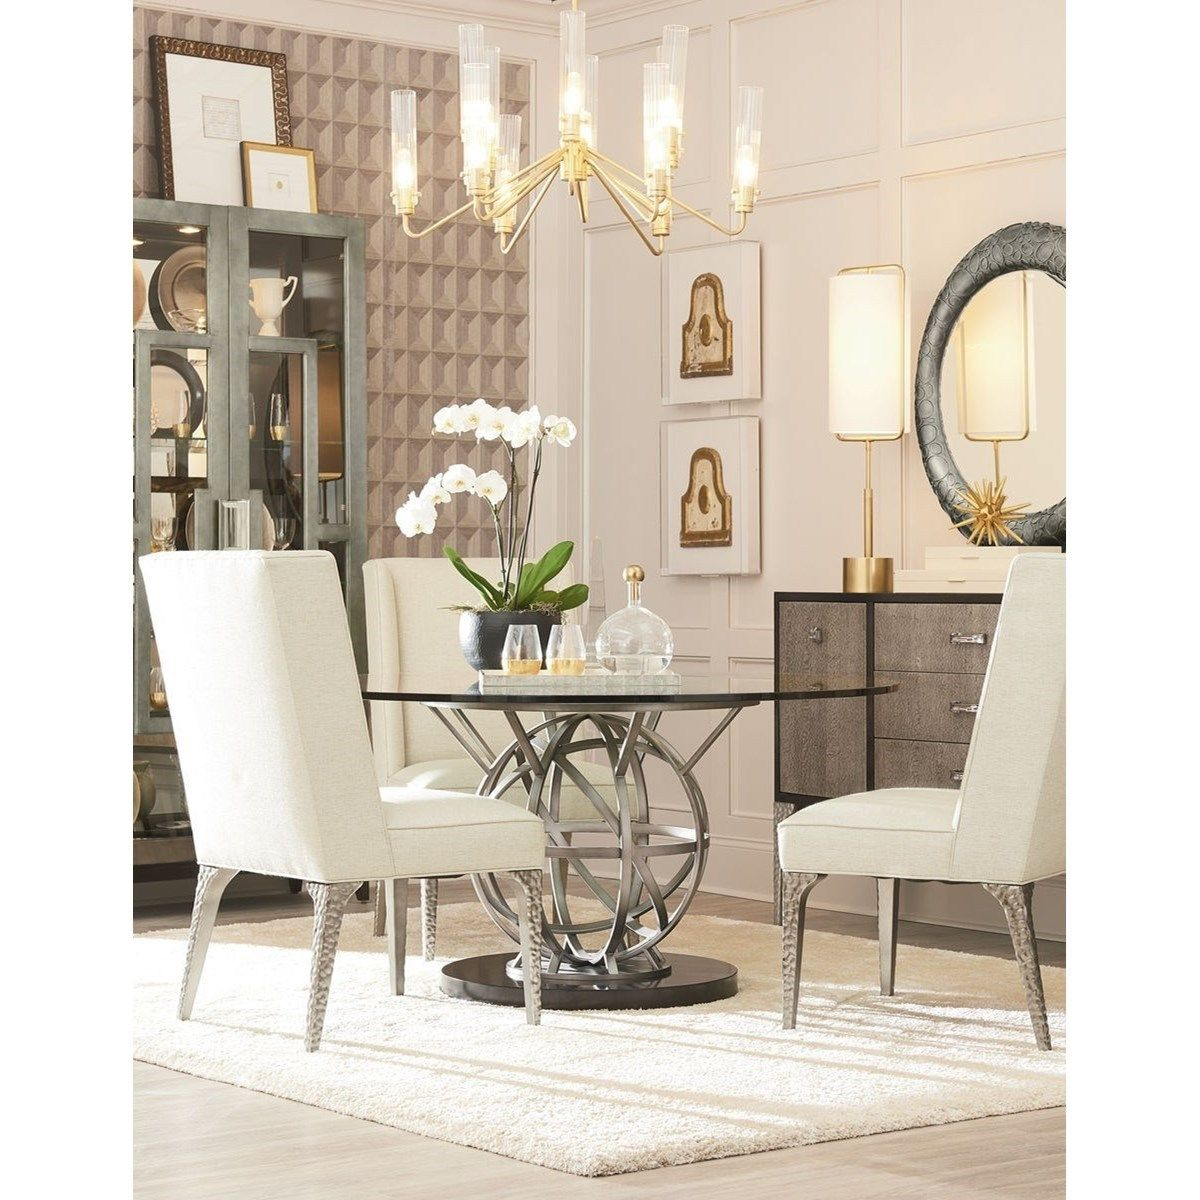 Prossimo 5 Piece Table And Chair Set By A R T Furniture Inc At Baer S Furniture Furniture Table And Chair Sets Furniture Design Inspiration